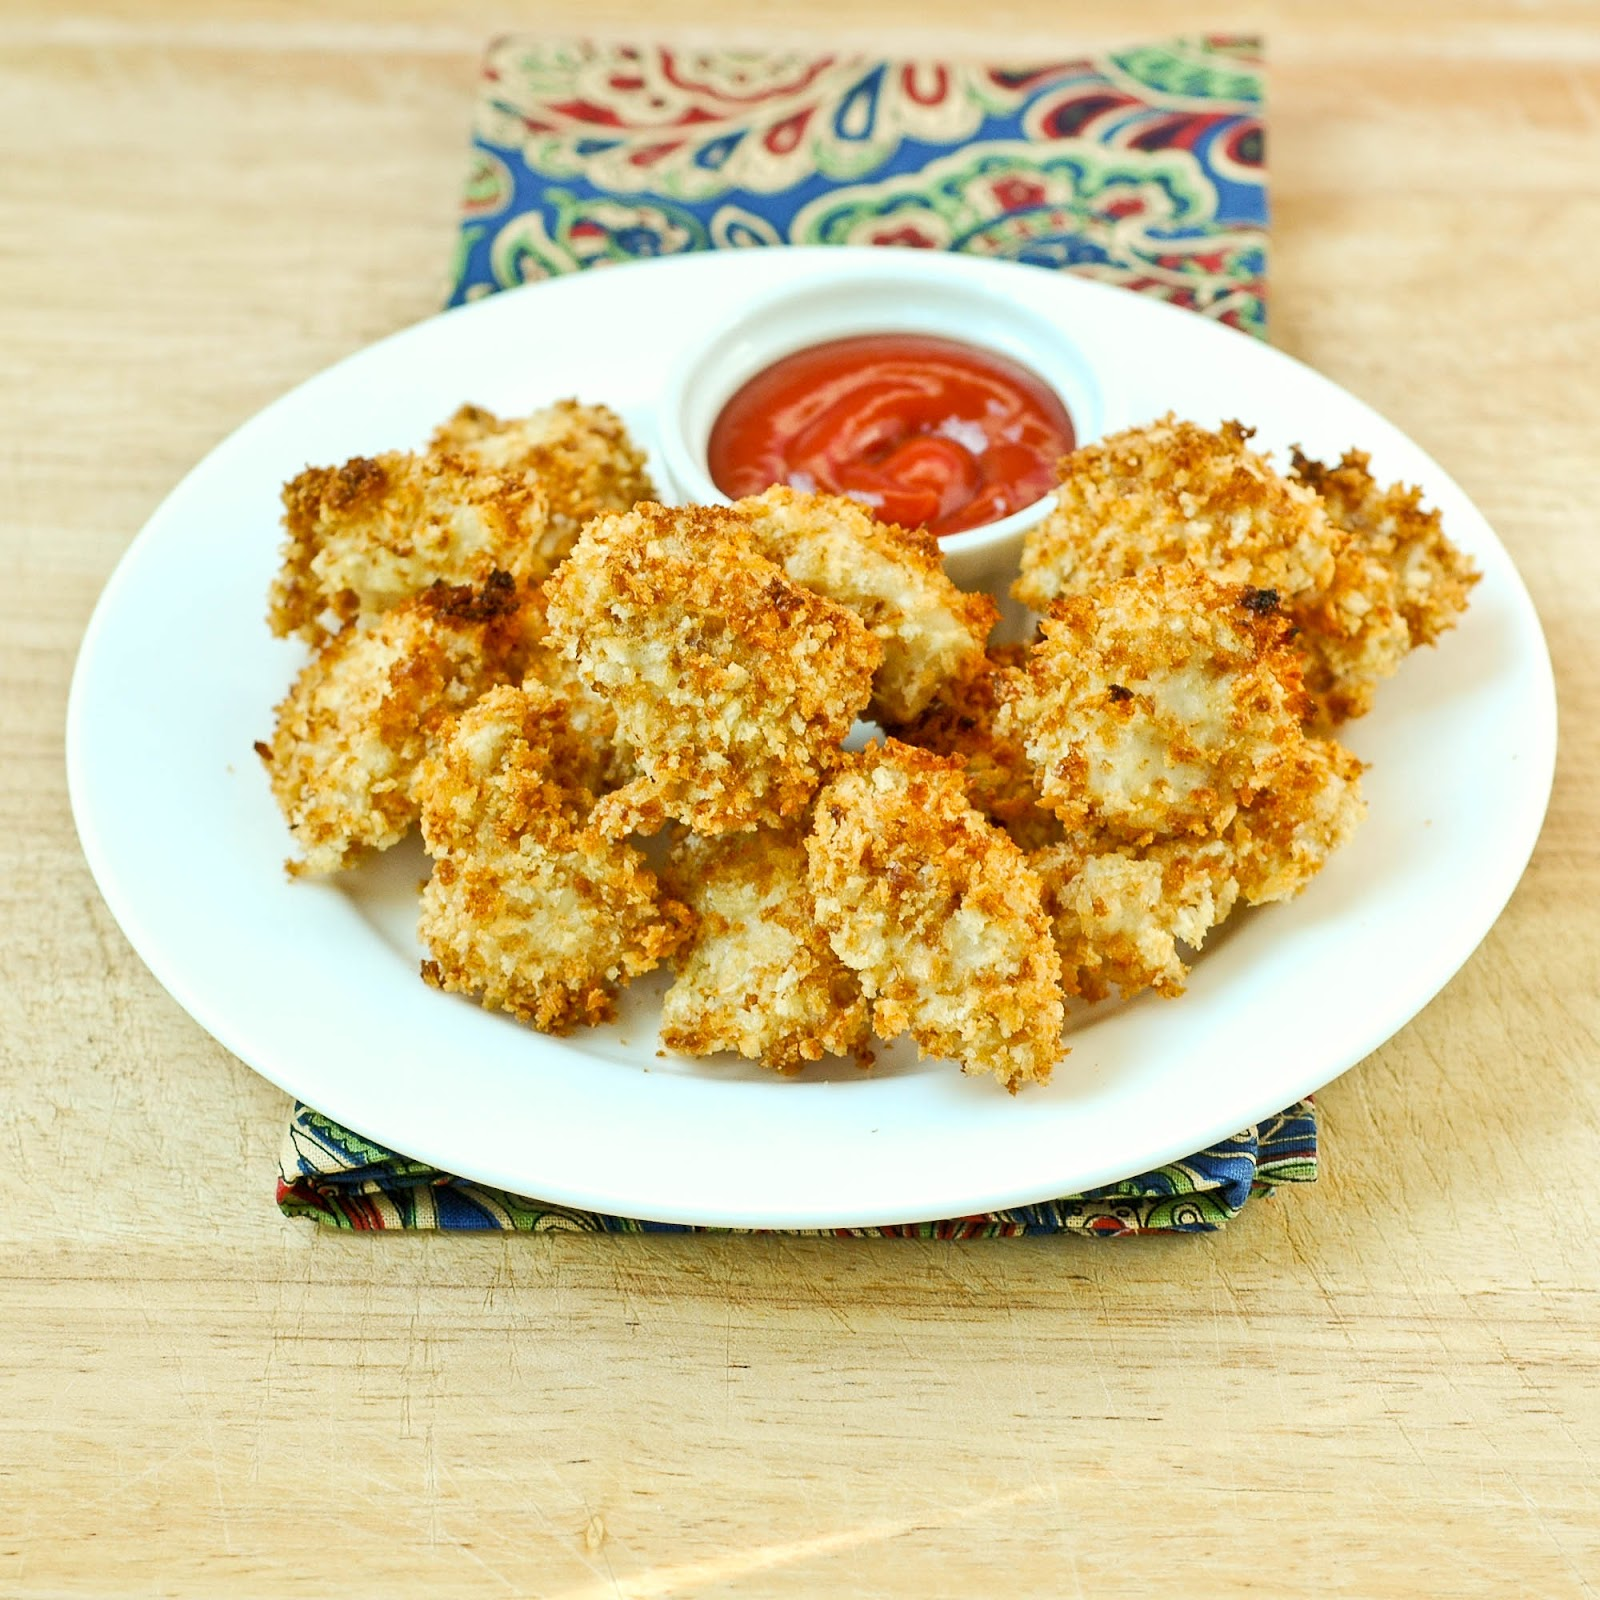 Good Thymes and Good Food: Crispy Baked Chicken Nuggets